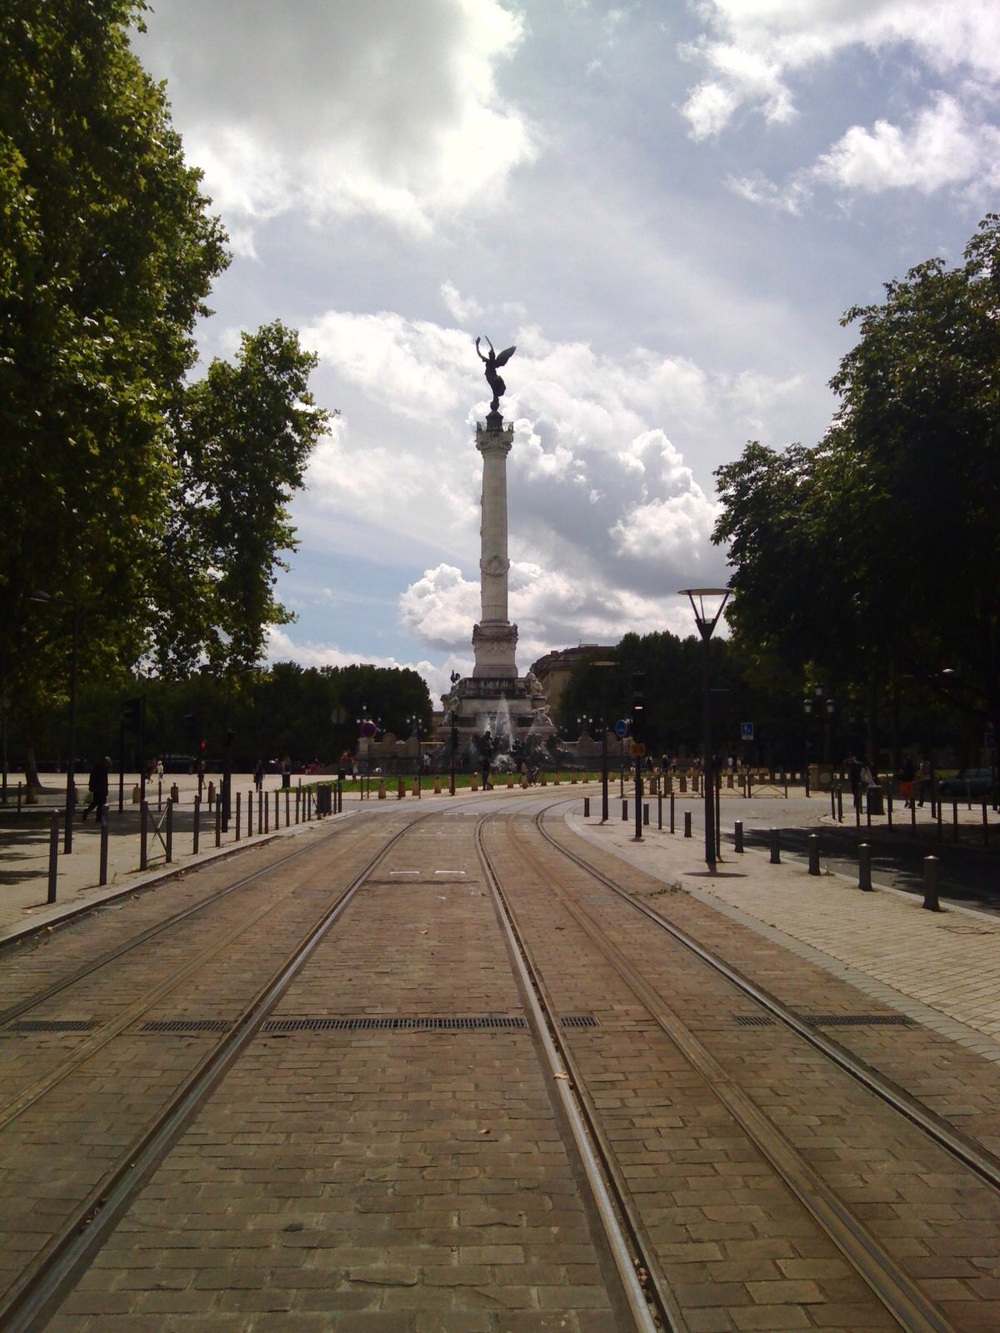 Bordeaux is great for transport and really easy to get around with the tram system.